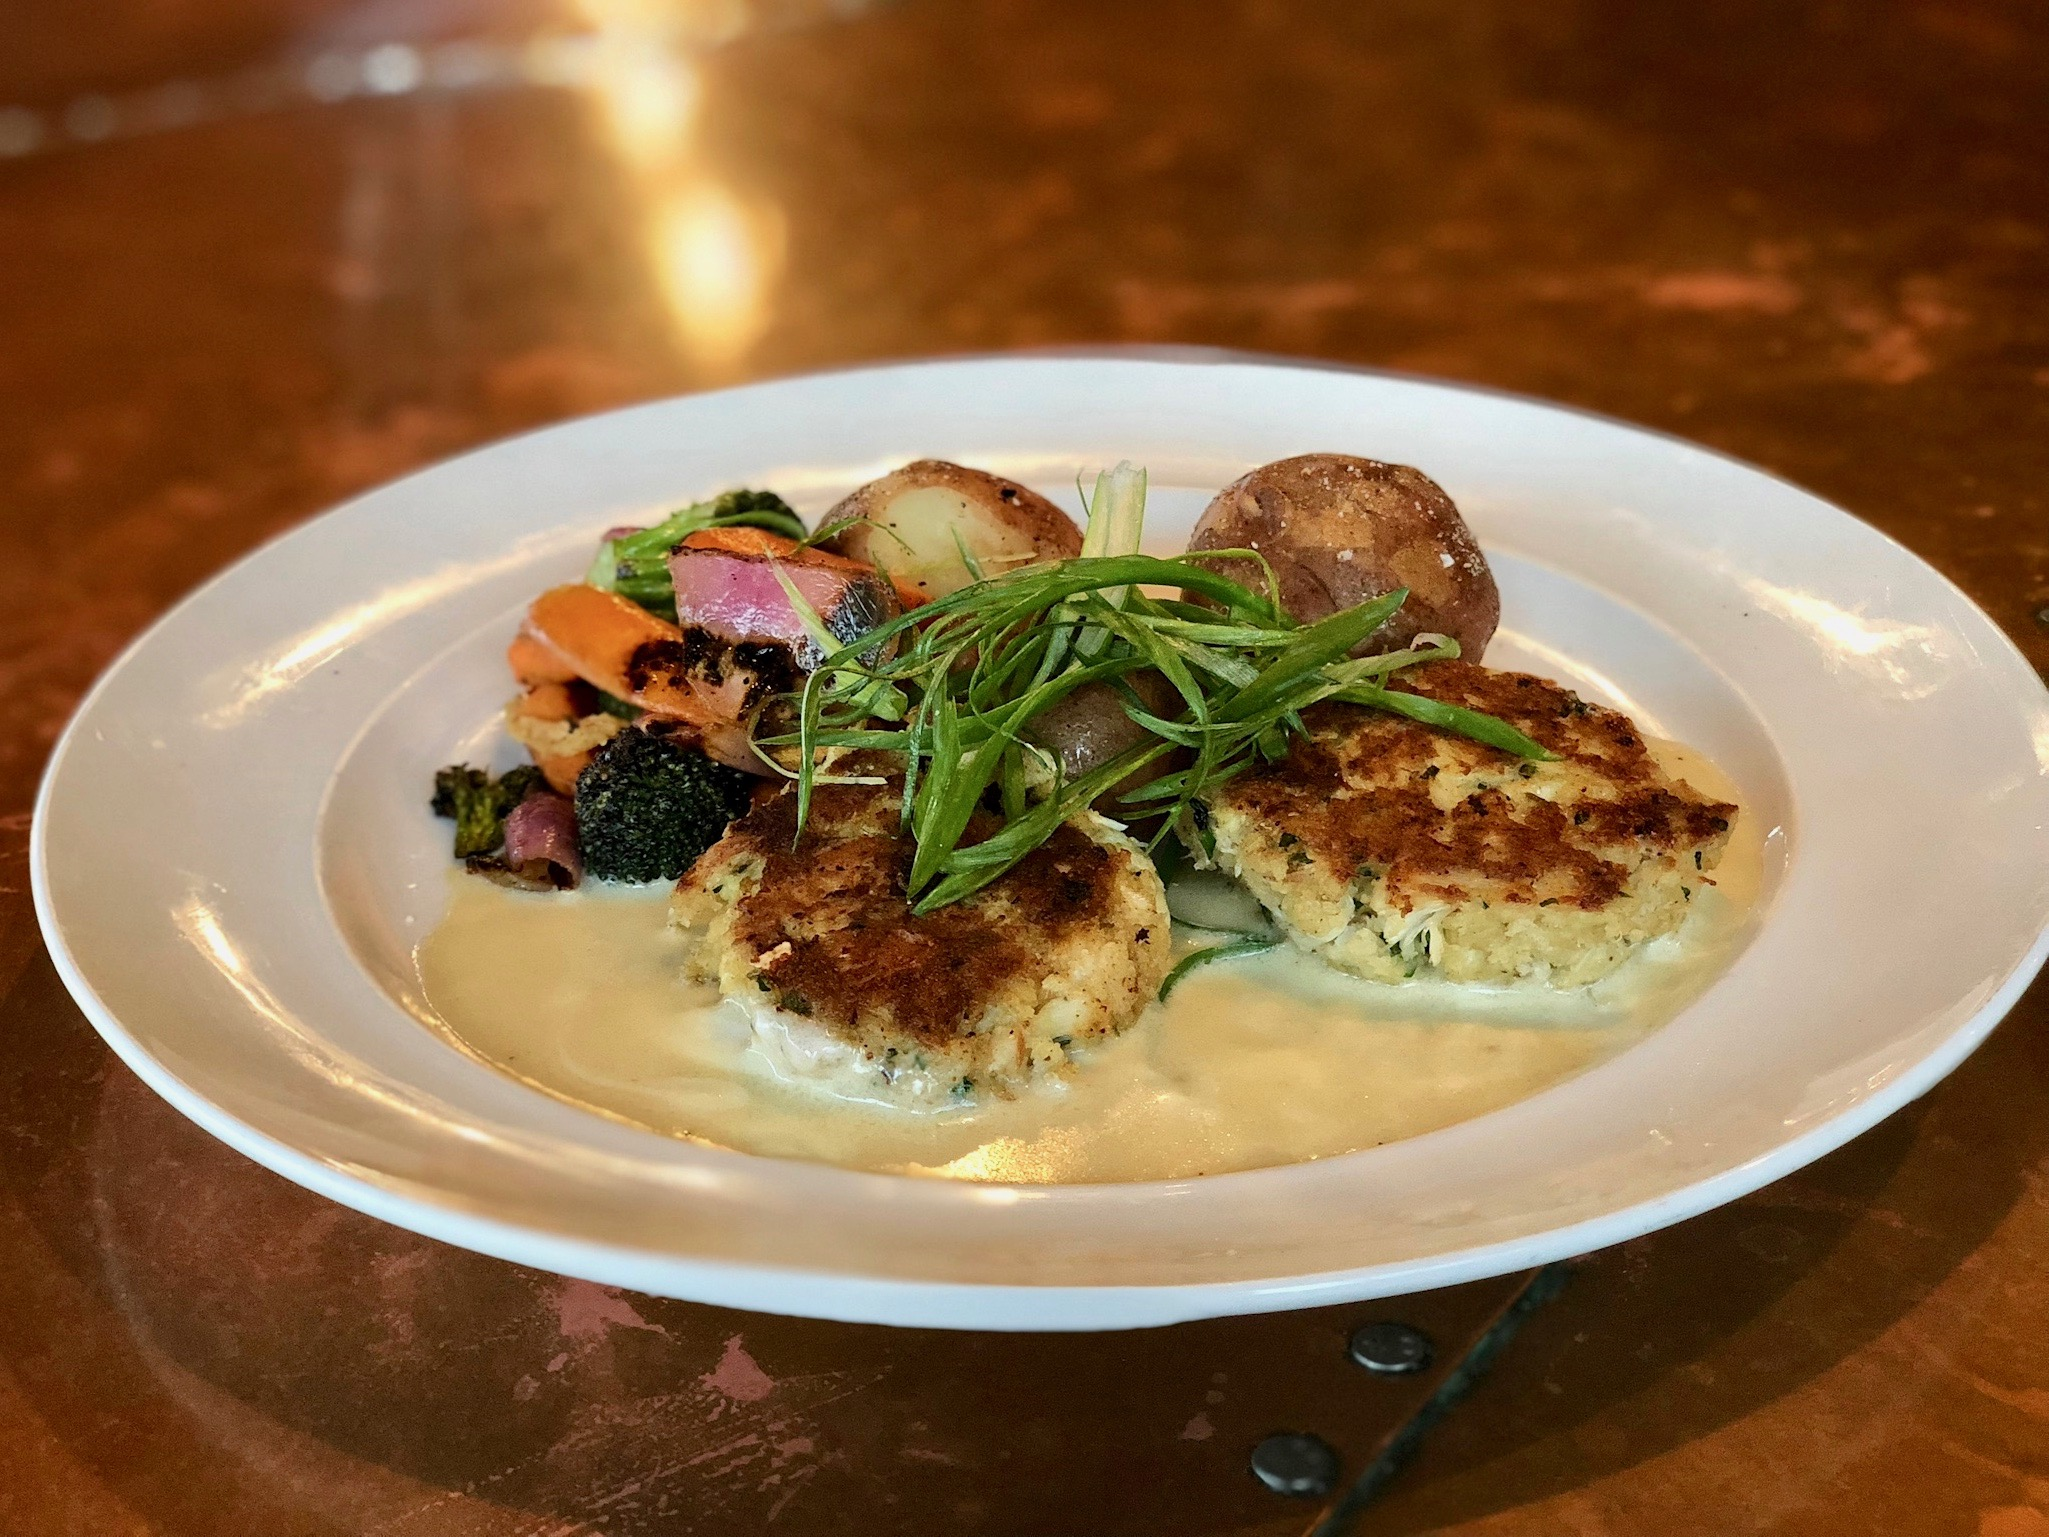 Crab cakes are part of the seasonal soft-shell crab menu thtis month at Burntwood Tavern in North Naples. (Photo: Burntwood Tavern)